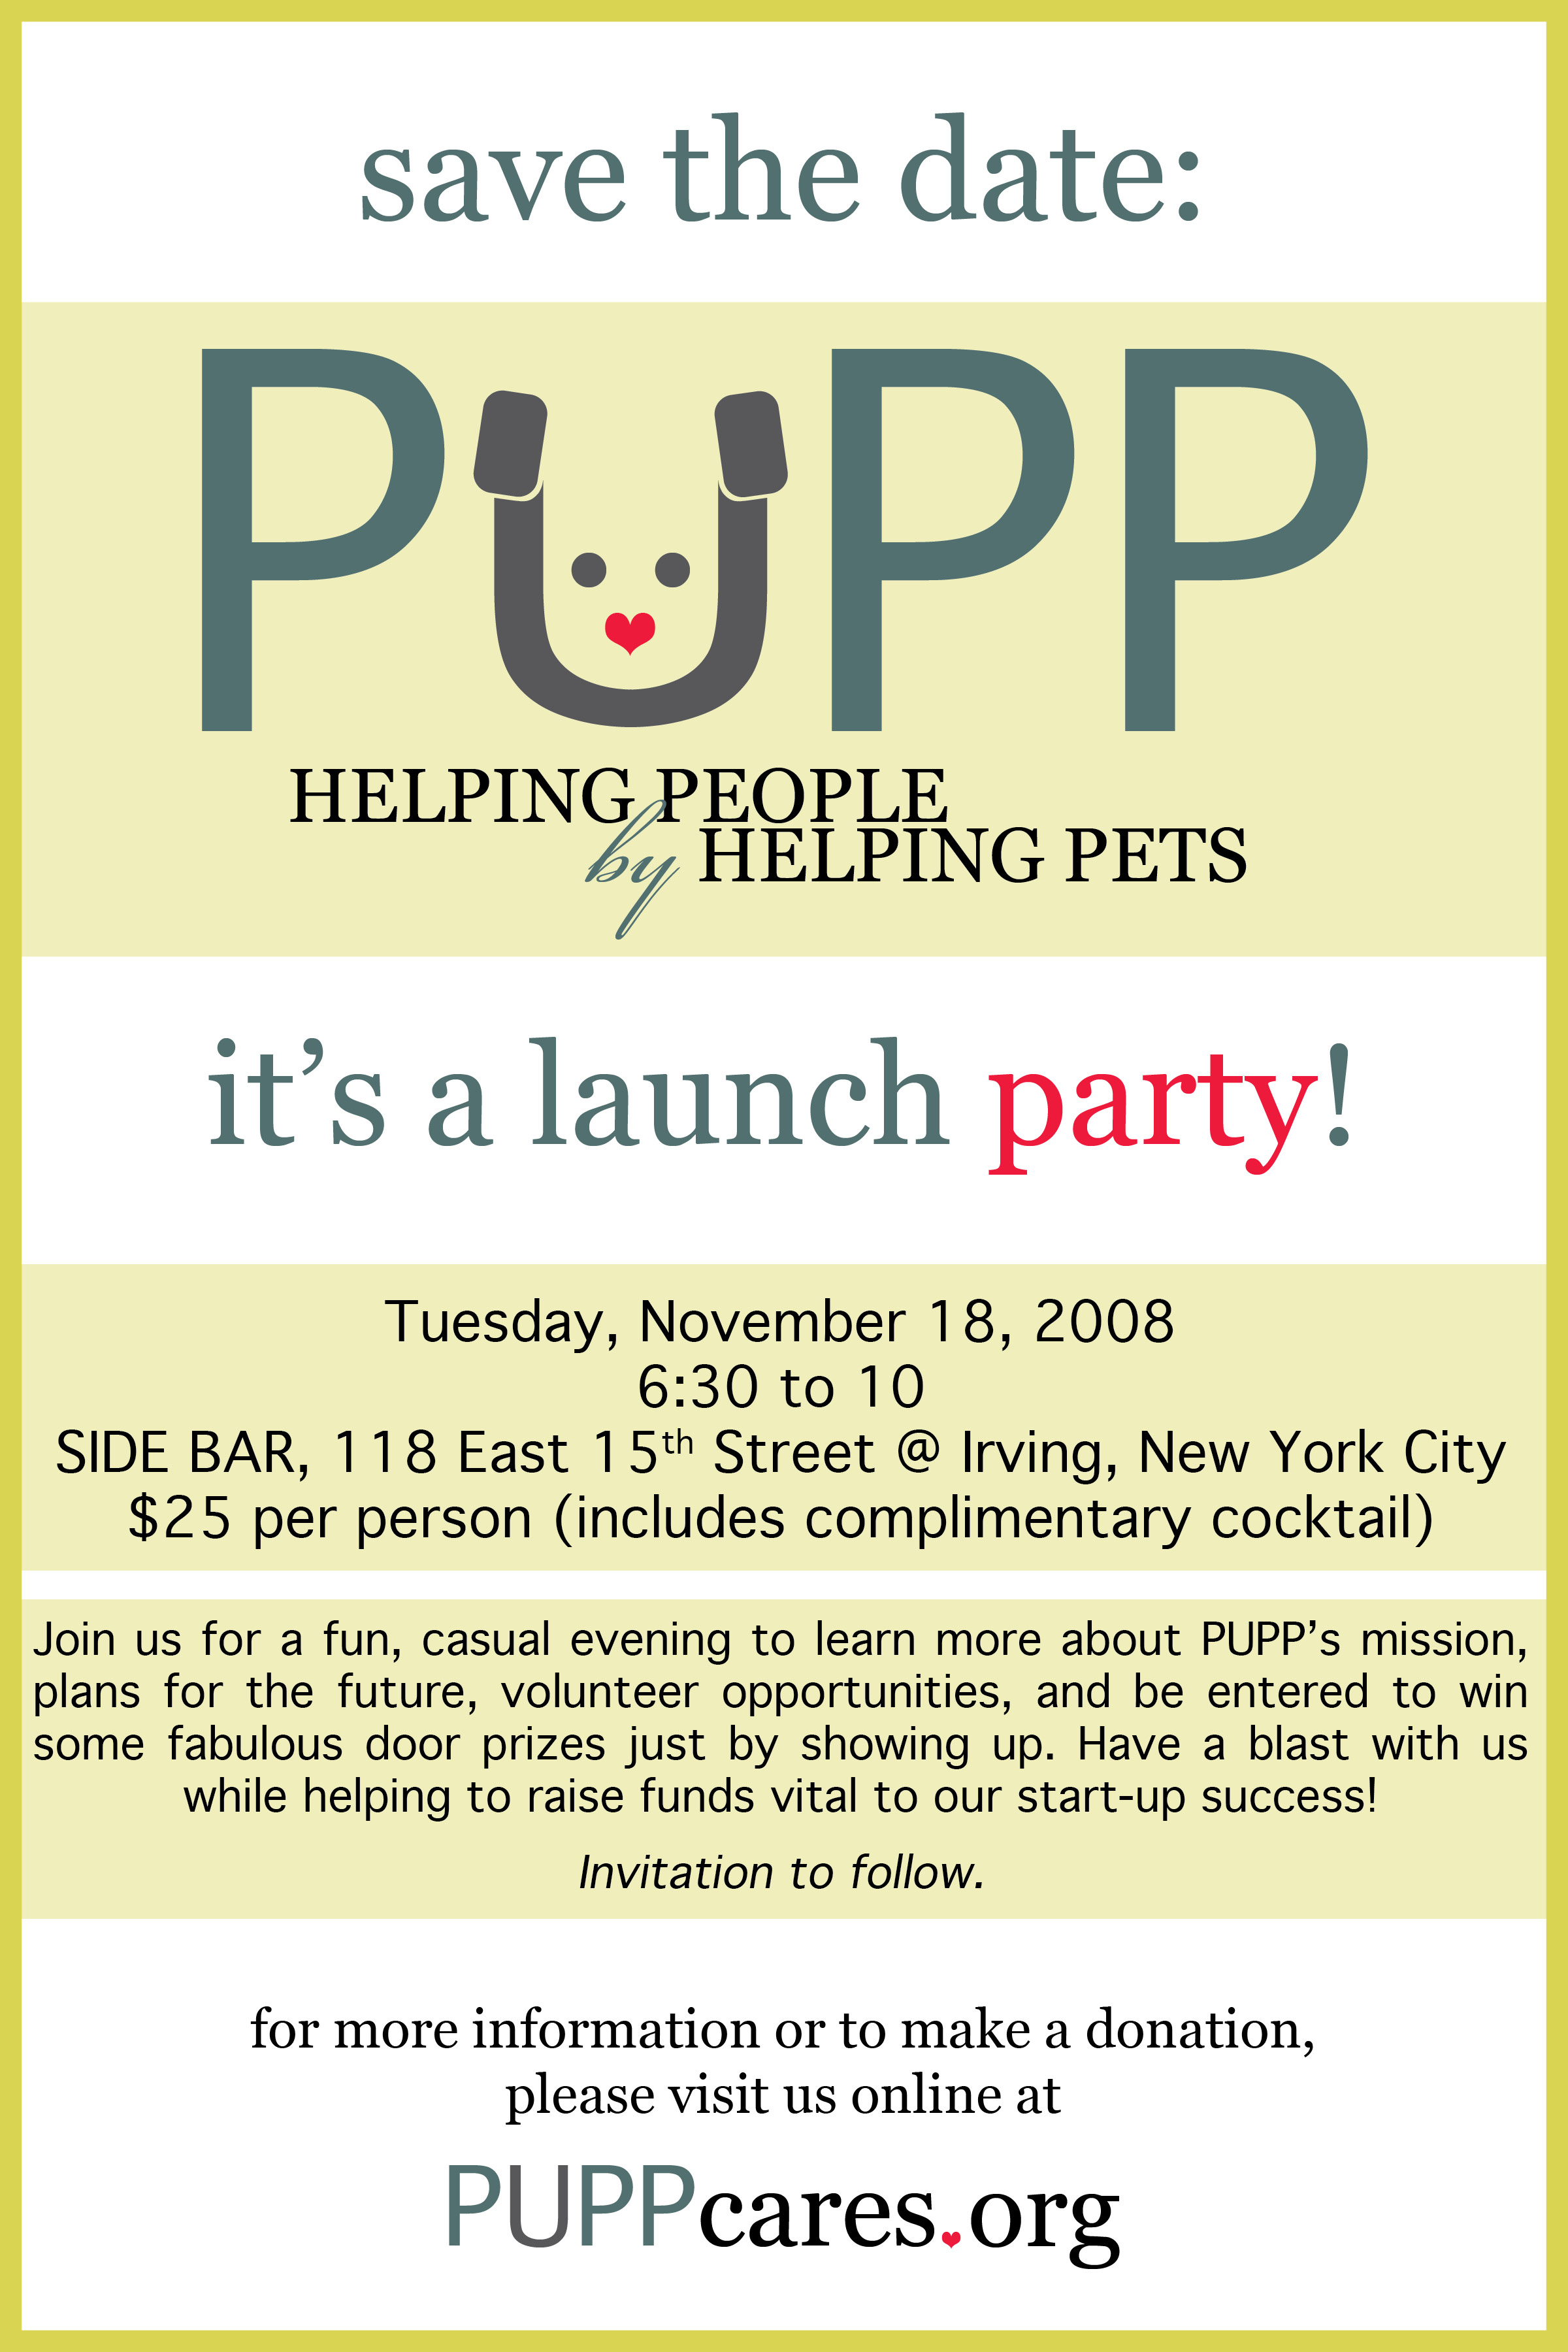 save-the-date_pupp-launch-party.jpg